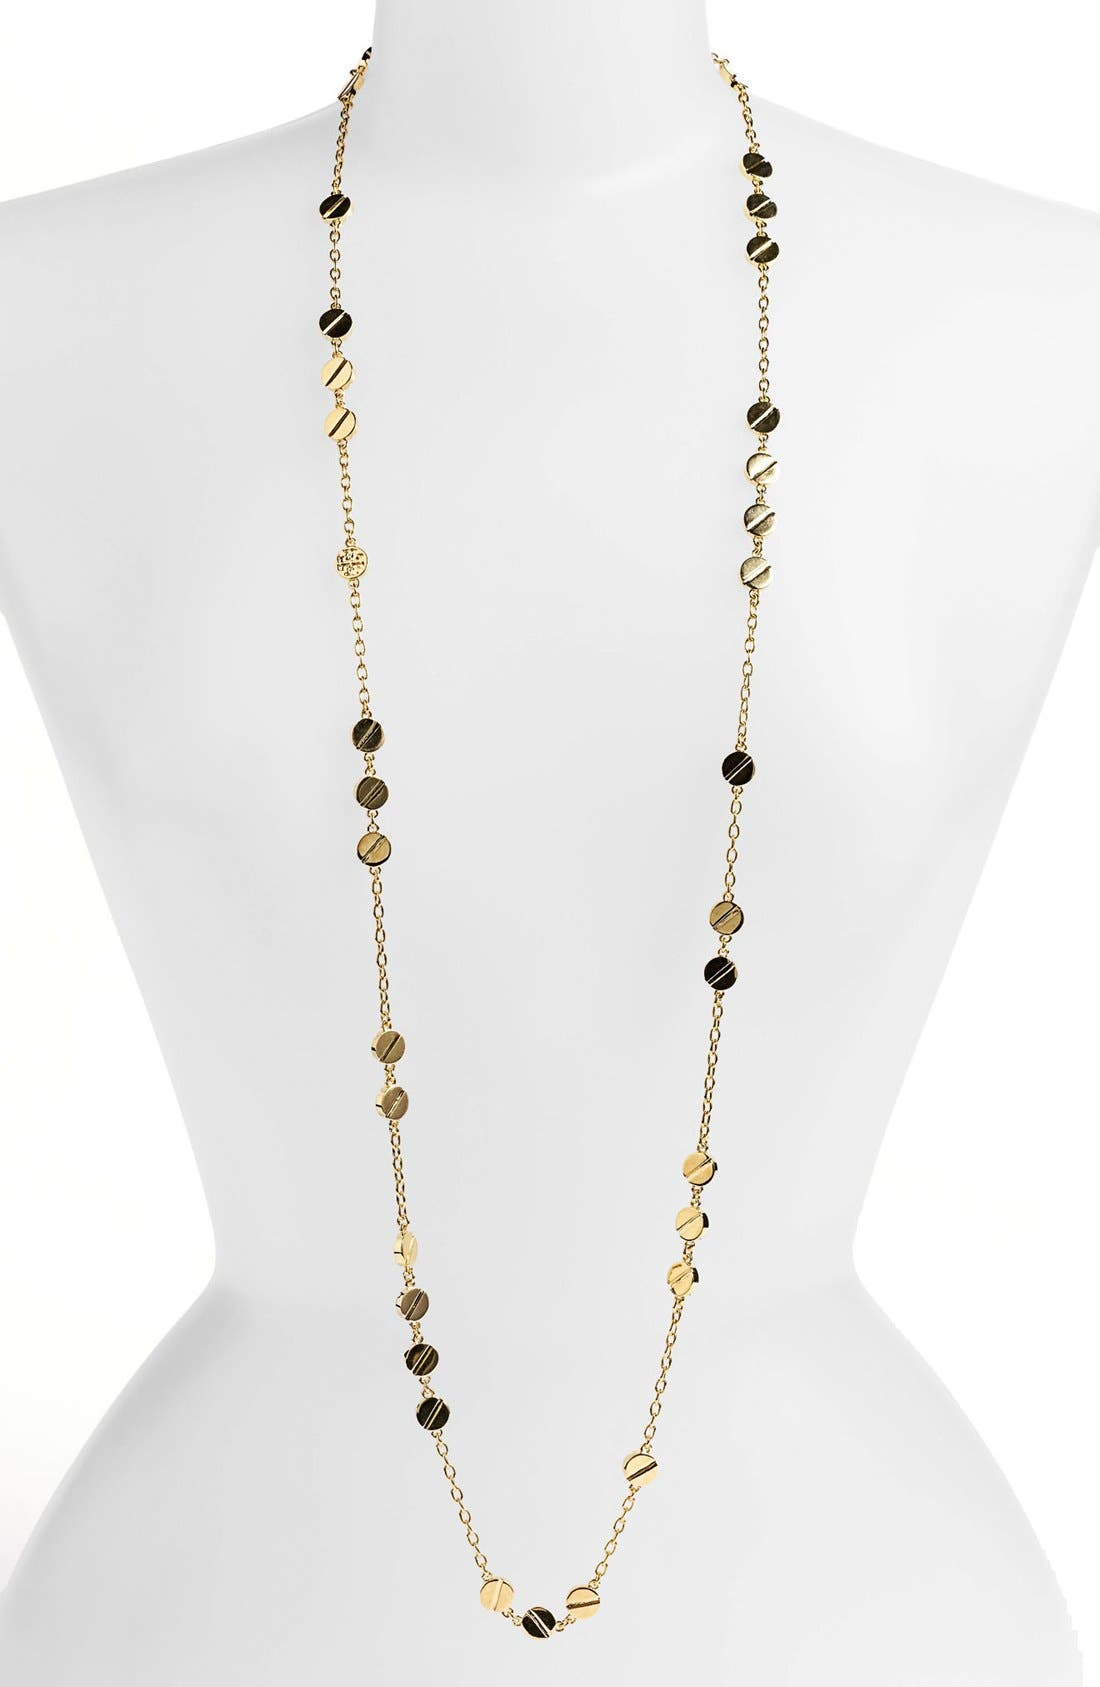 Main Image - Tory Burch 'Screw Rivet' Extra Long Station Necklace